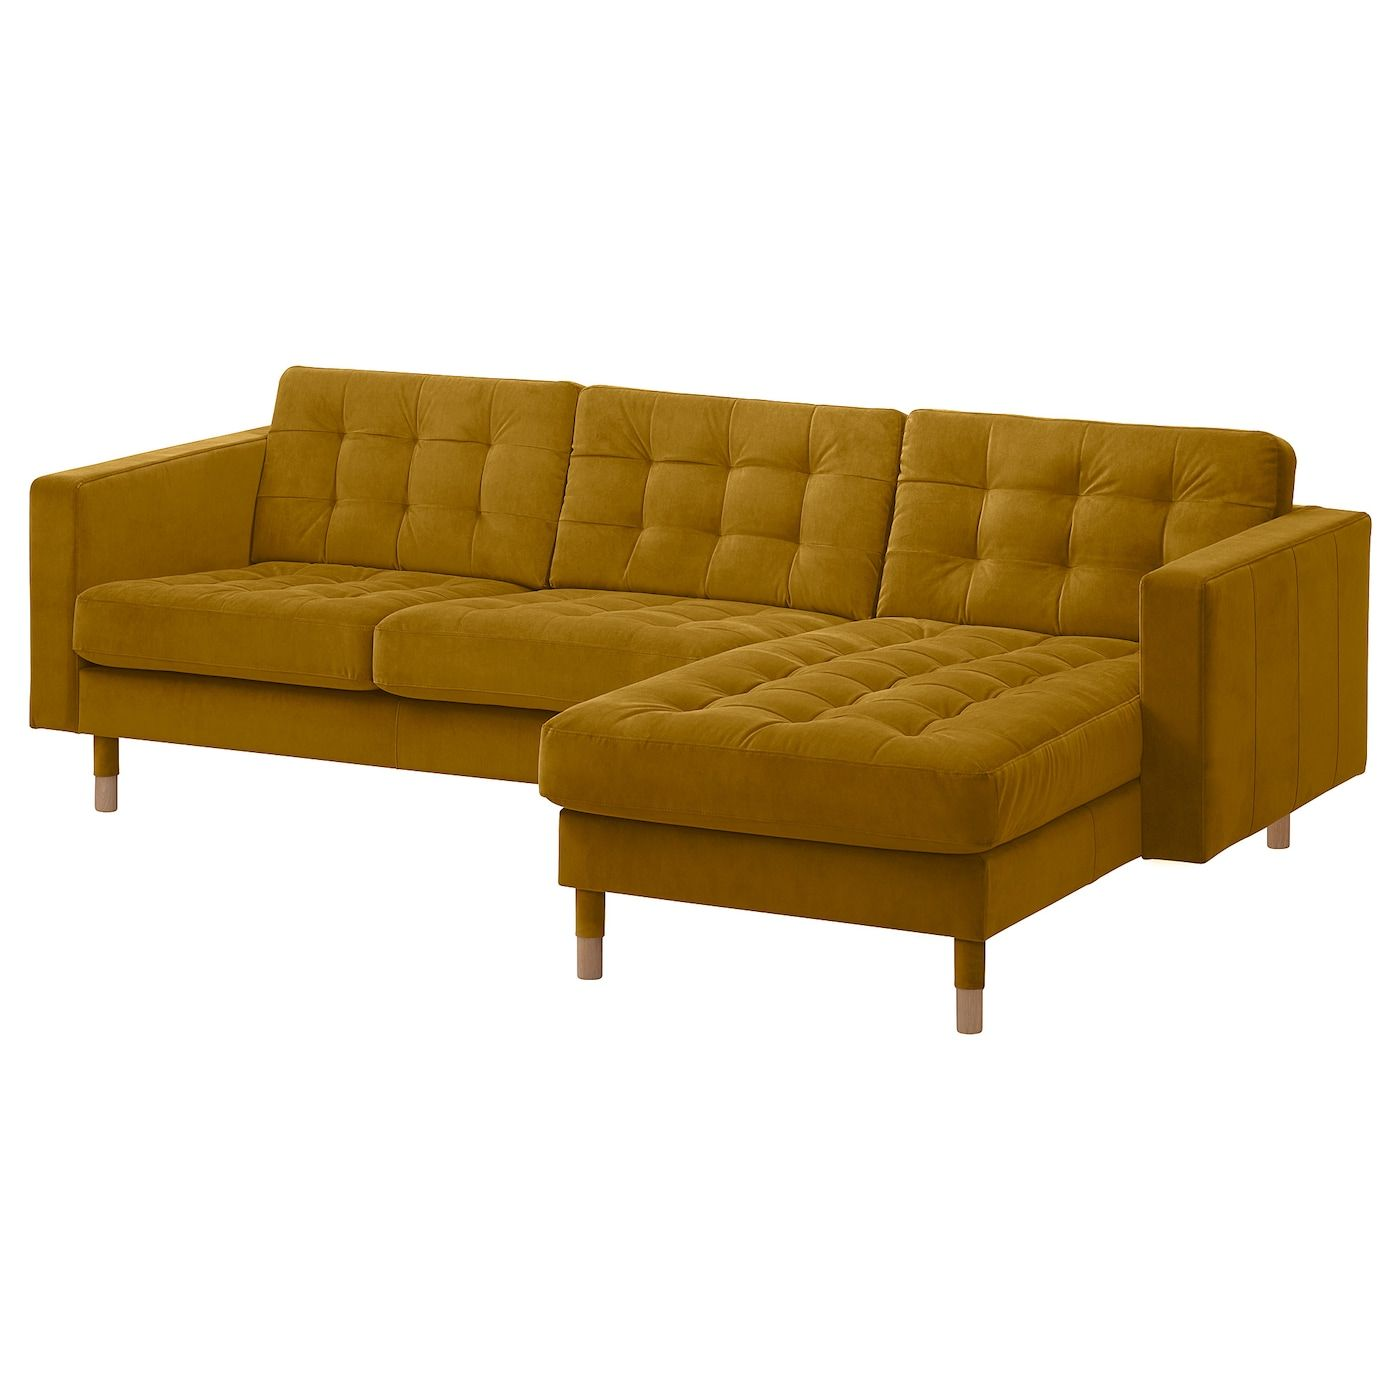 Landskrona Velvet Yellow 3 Seat Sofa Width 242 Cm Ikea In 2020 Stylish Living Room Chaise Longue Sofa